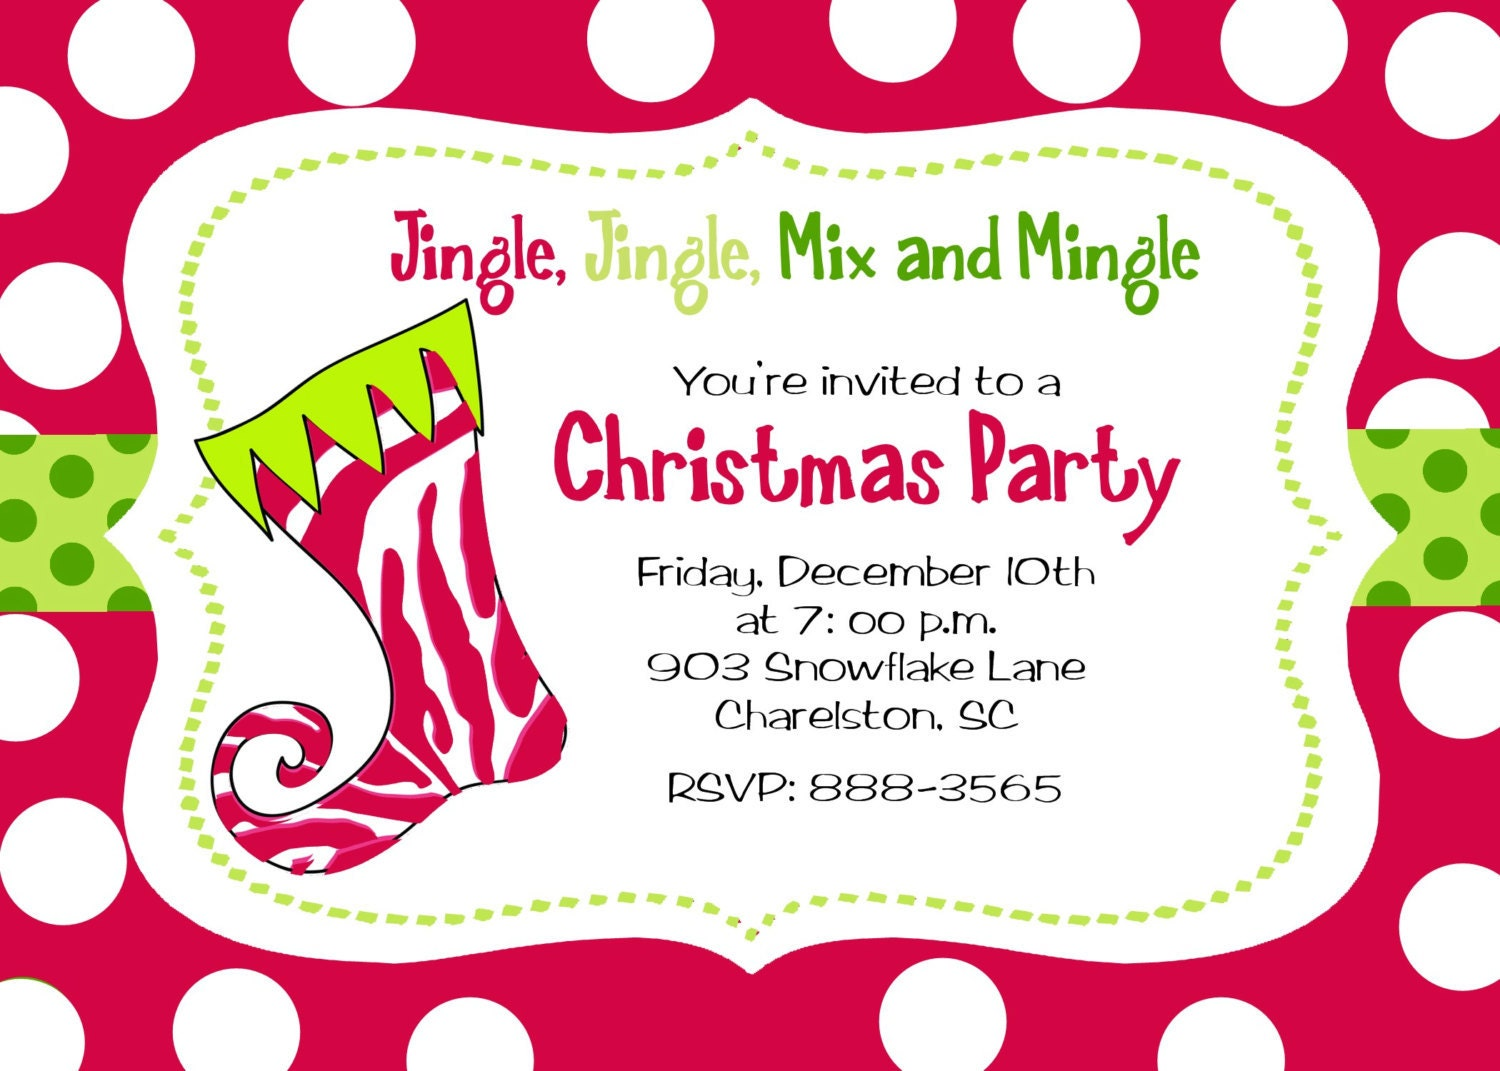 Holiday Party Invitation Wording rockcuptk – Christmas Party Invitations Online